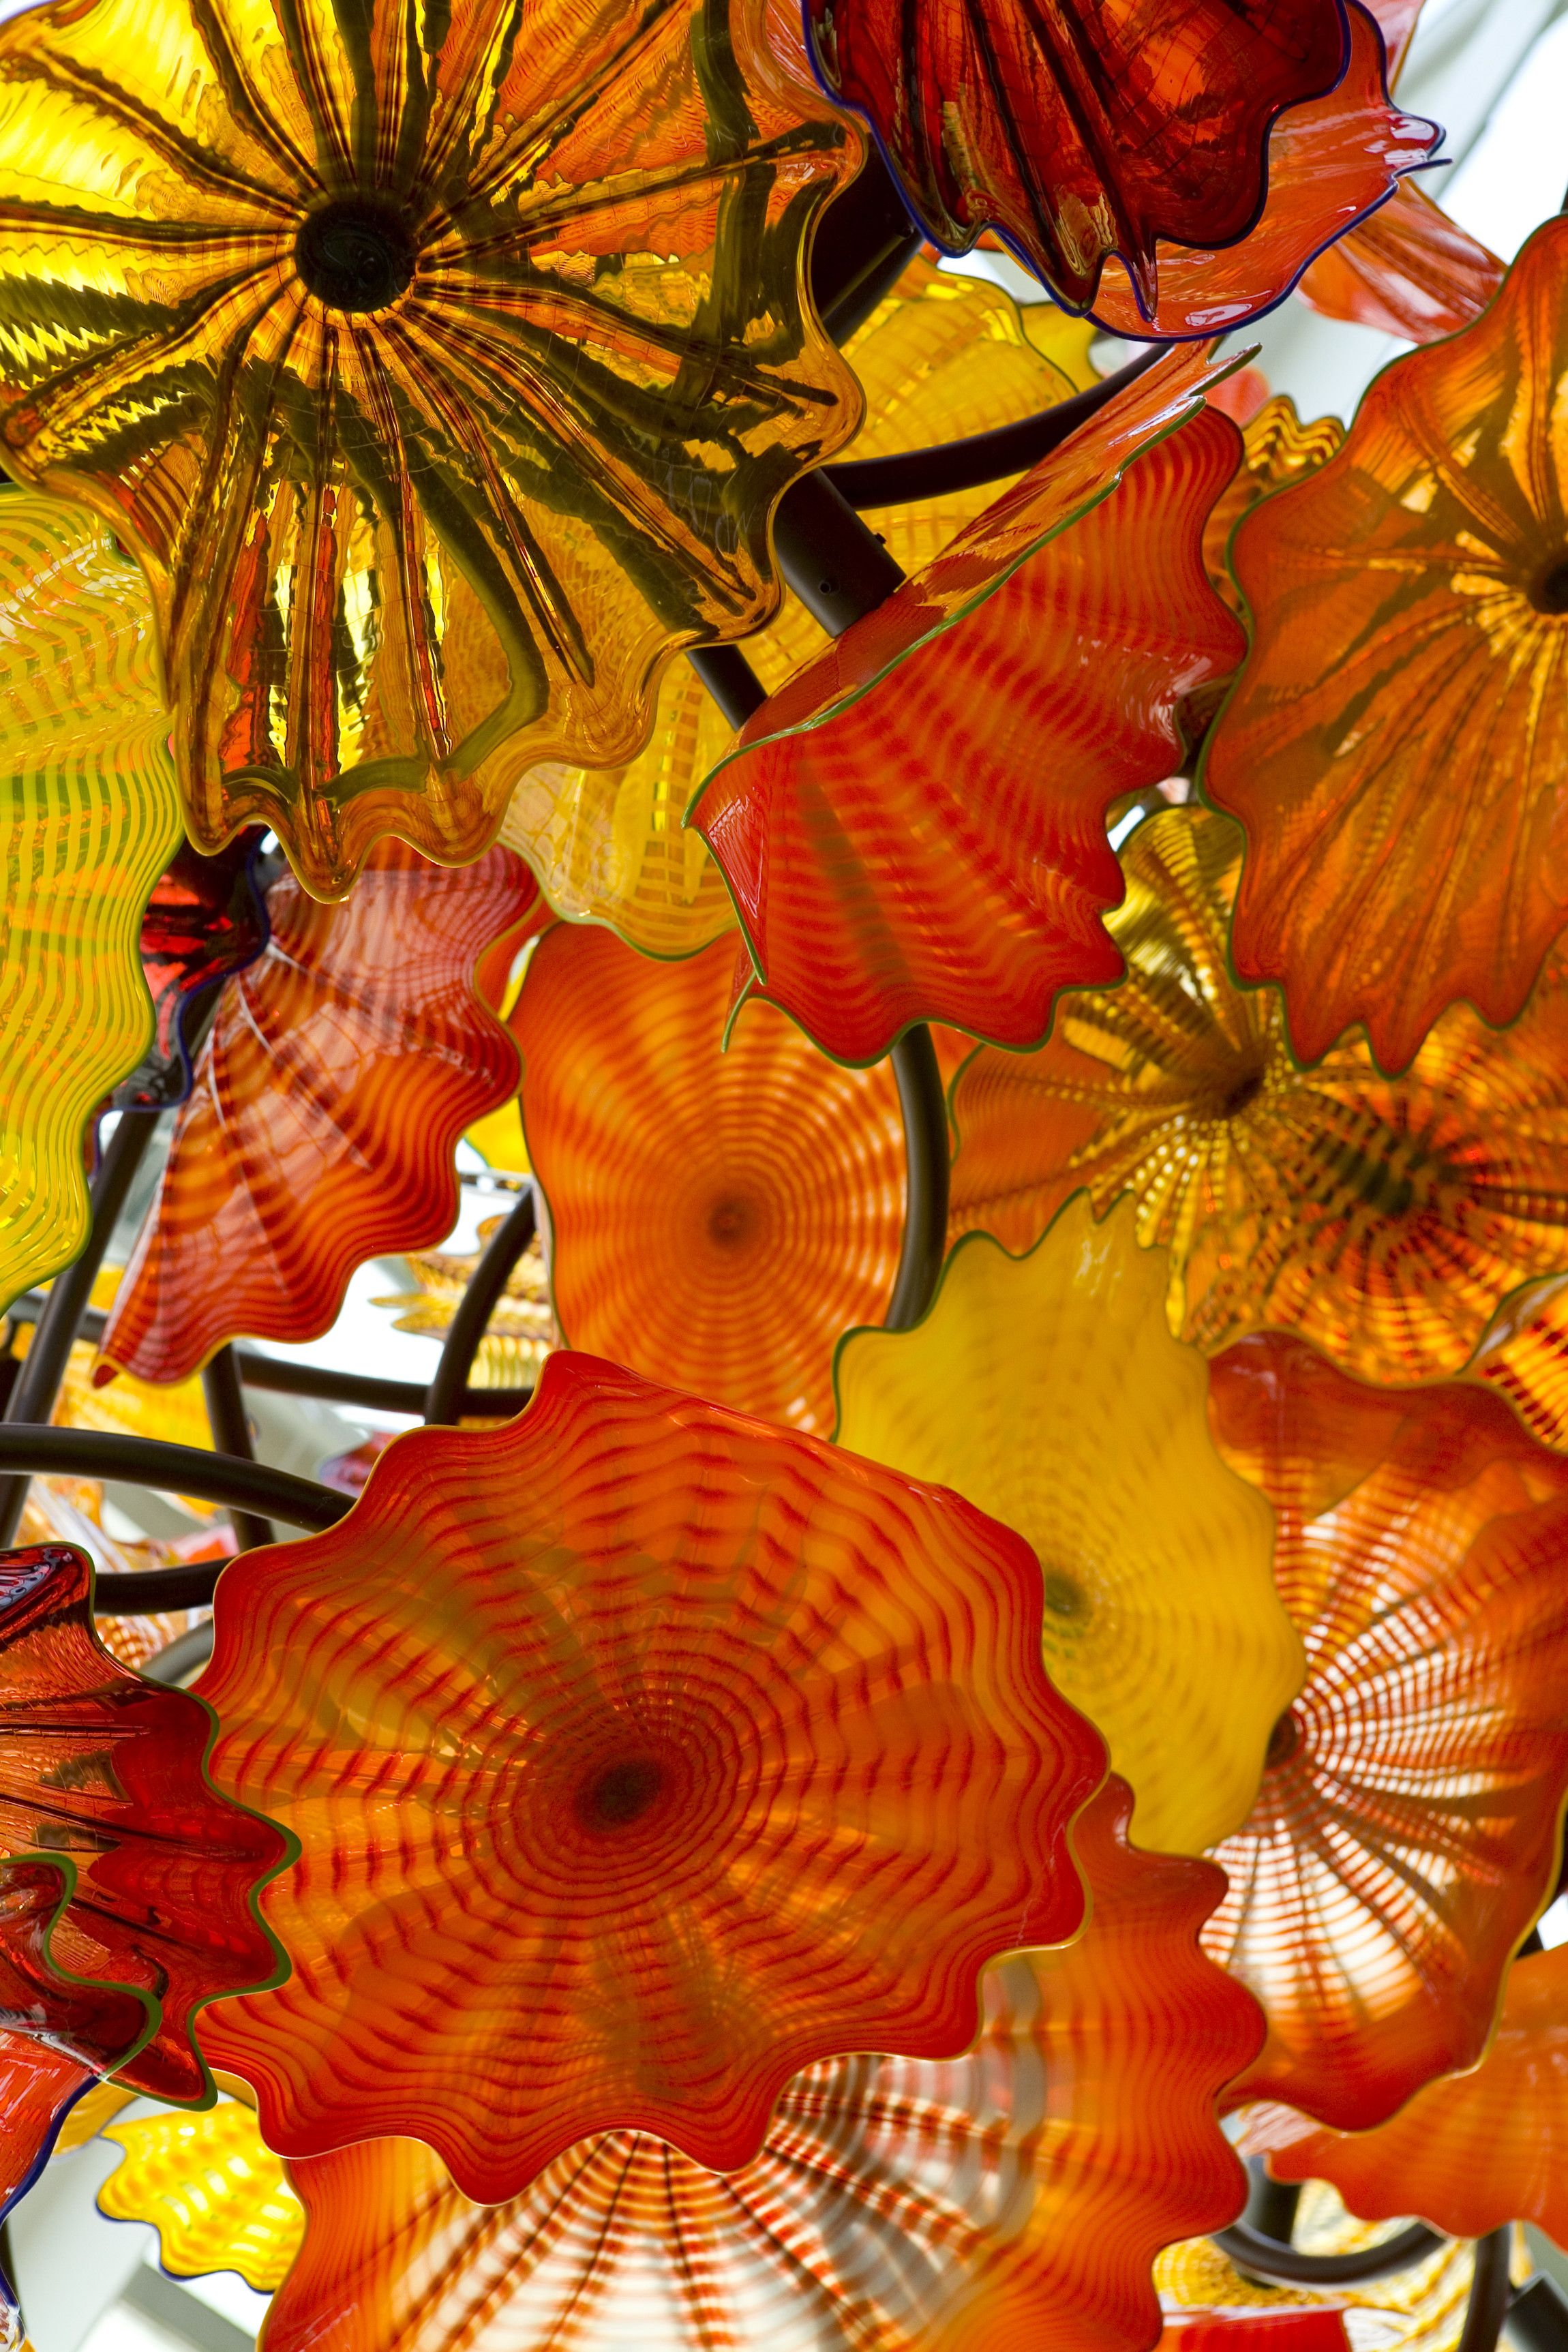 Chihuly Celebrating Nature Opens Today At Franklin Park Conservatory In Columbus Ohio Experience The Conservatory S Full C Chihuly Blown Glass Art Artwork